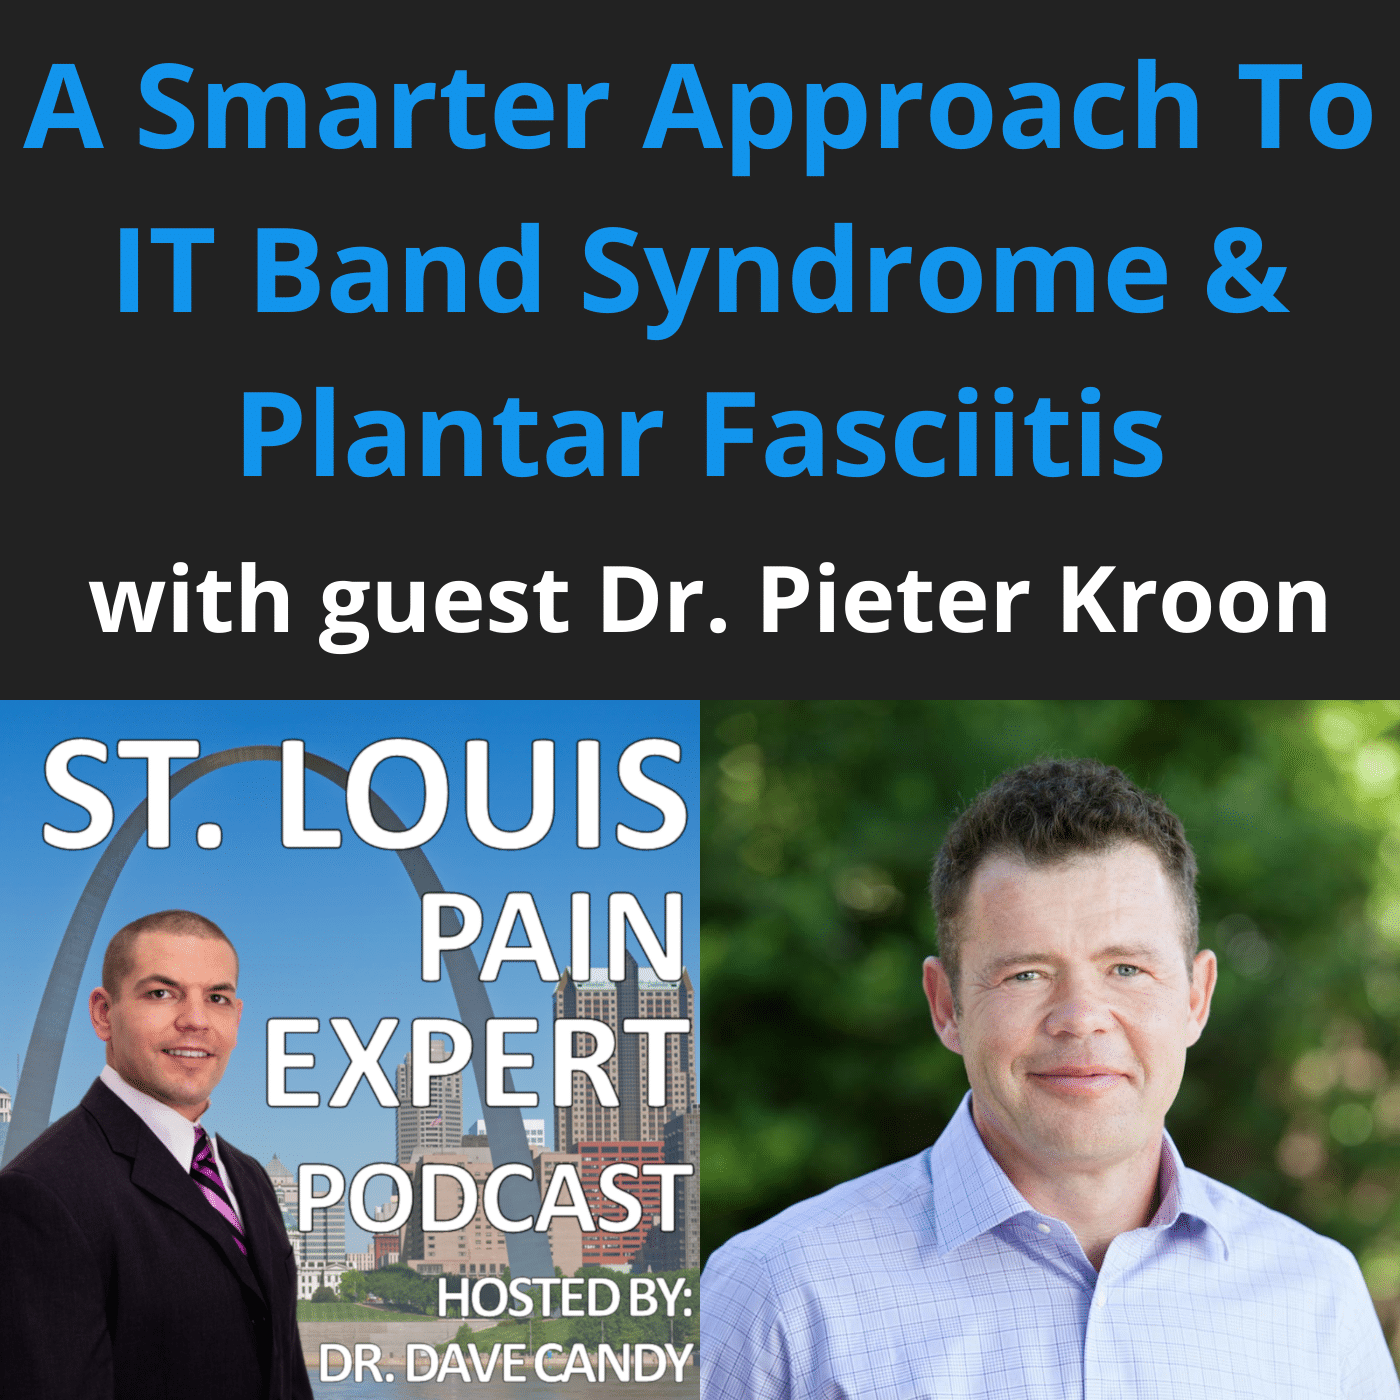 IT Band Syndrome & Plantar Fasciitis with Dr. Pieter Kroon